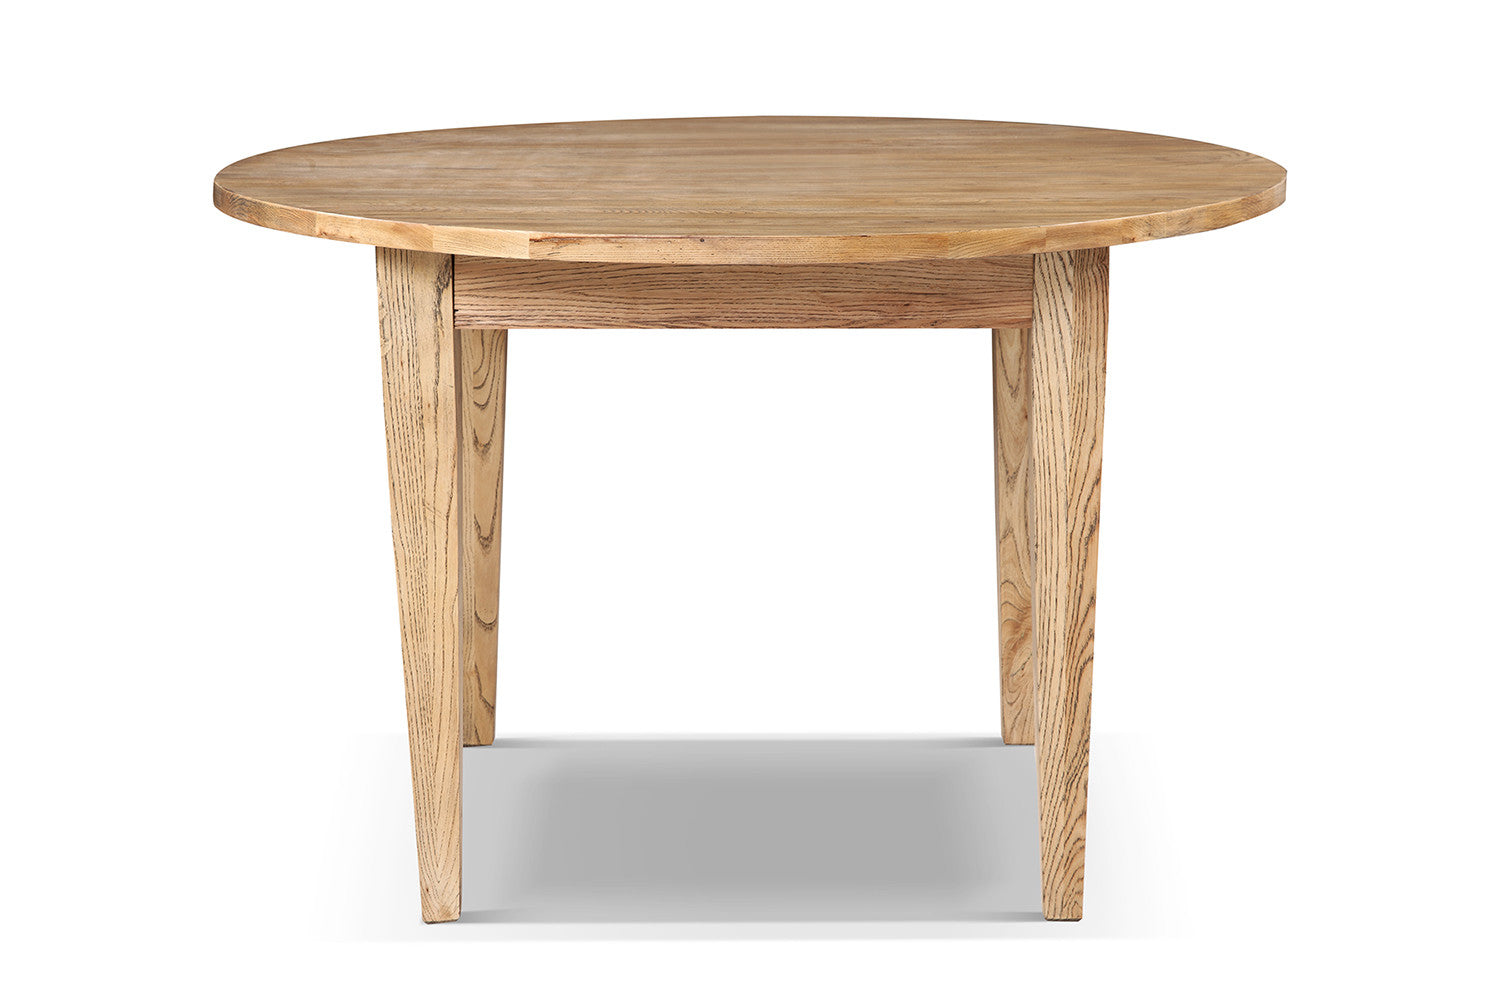 Table de cuisine cottage ronde en bois rose moore - Dimension table ronde ...